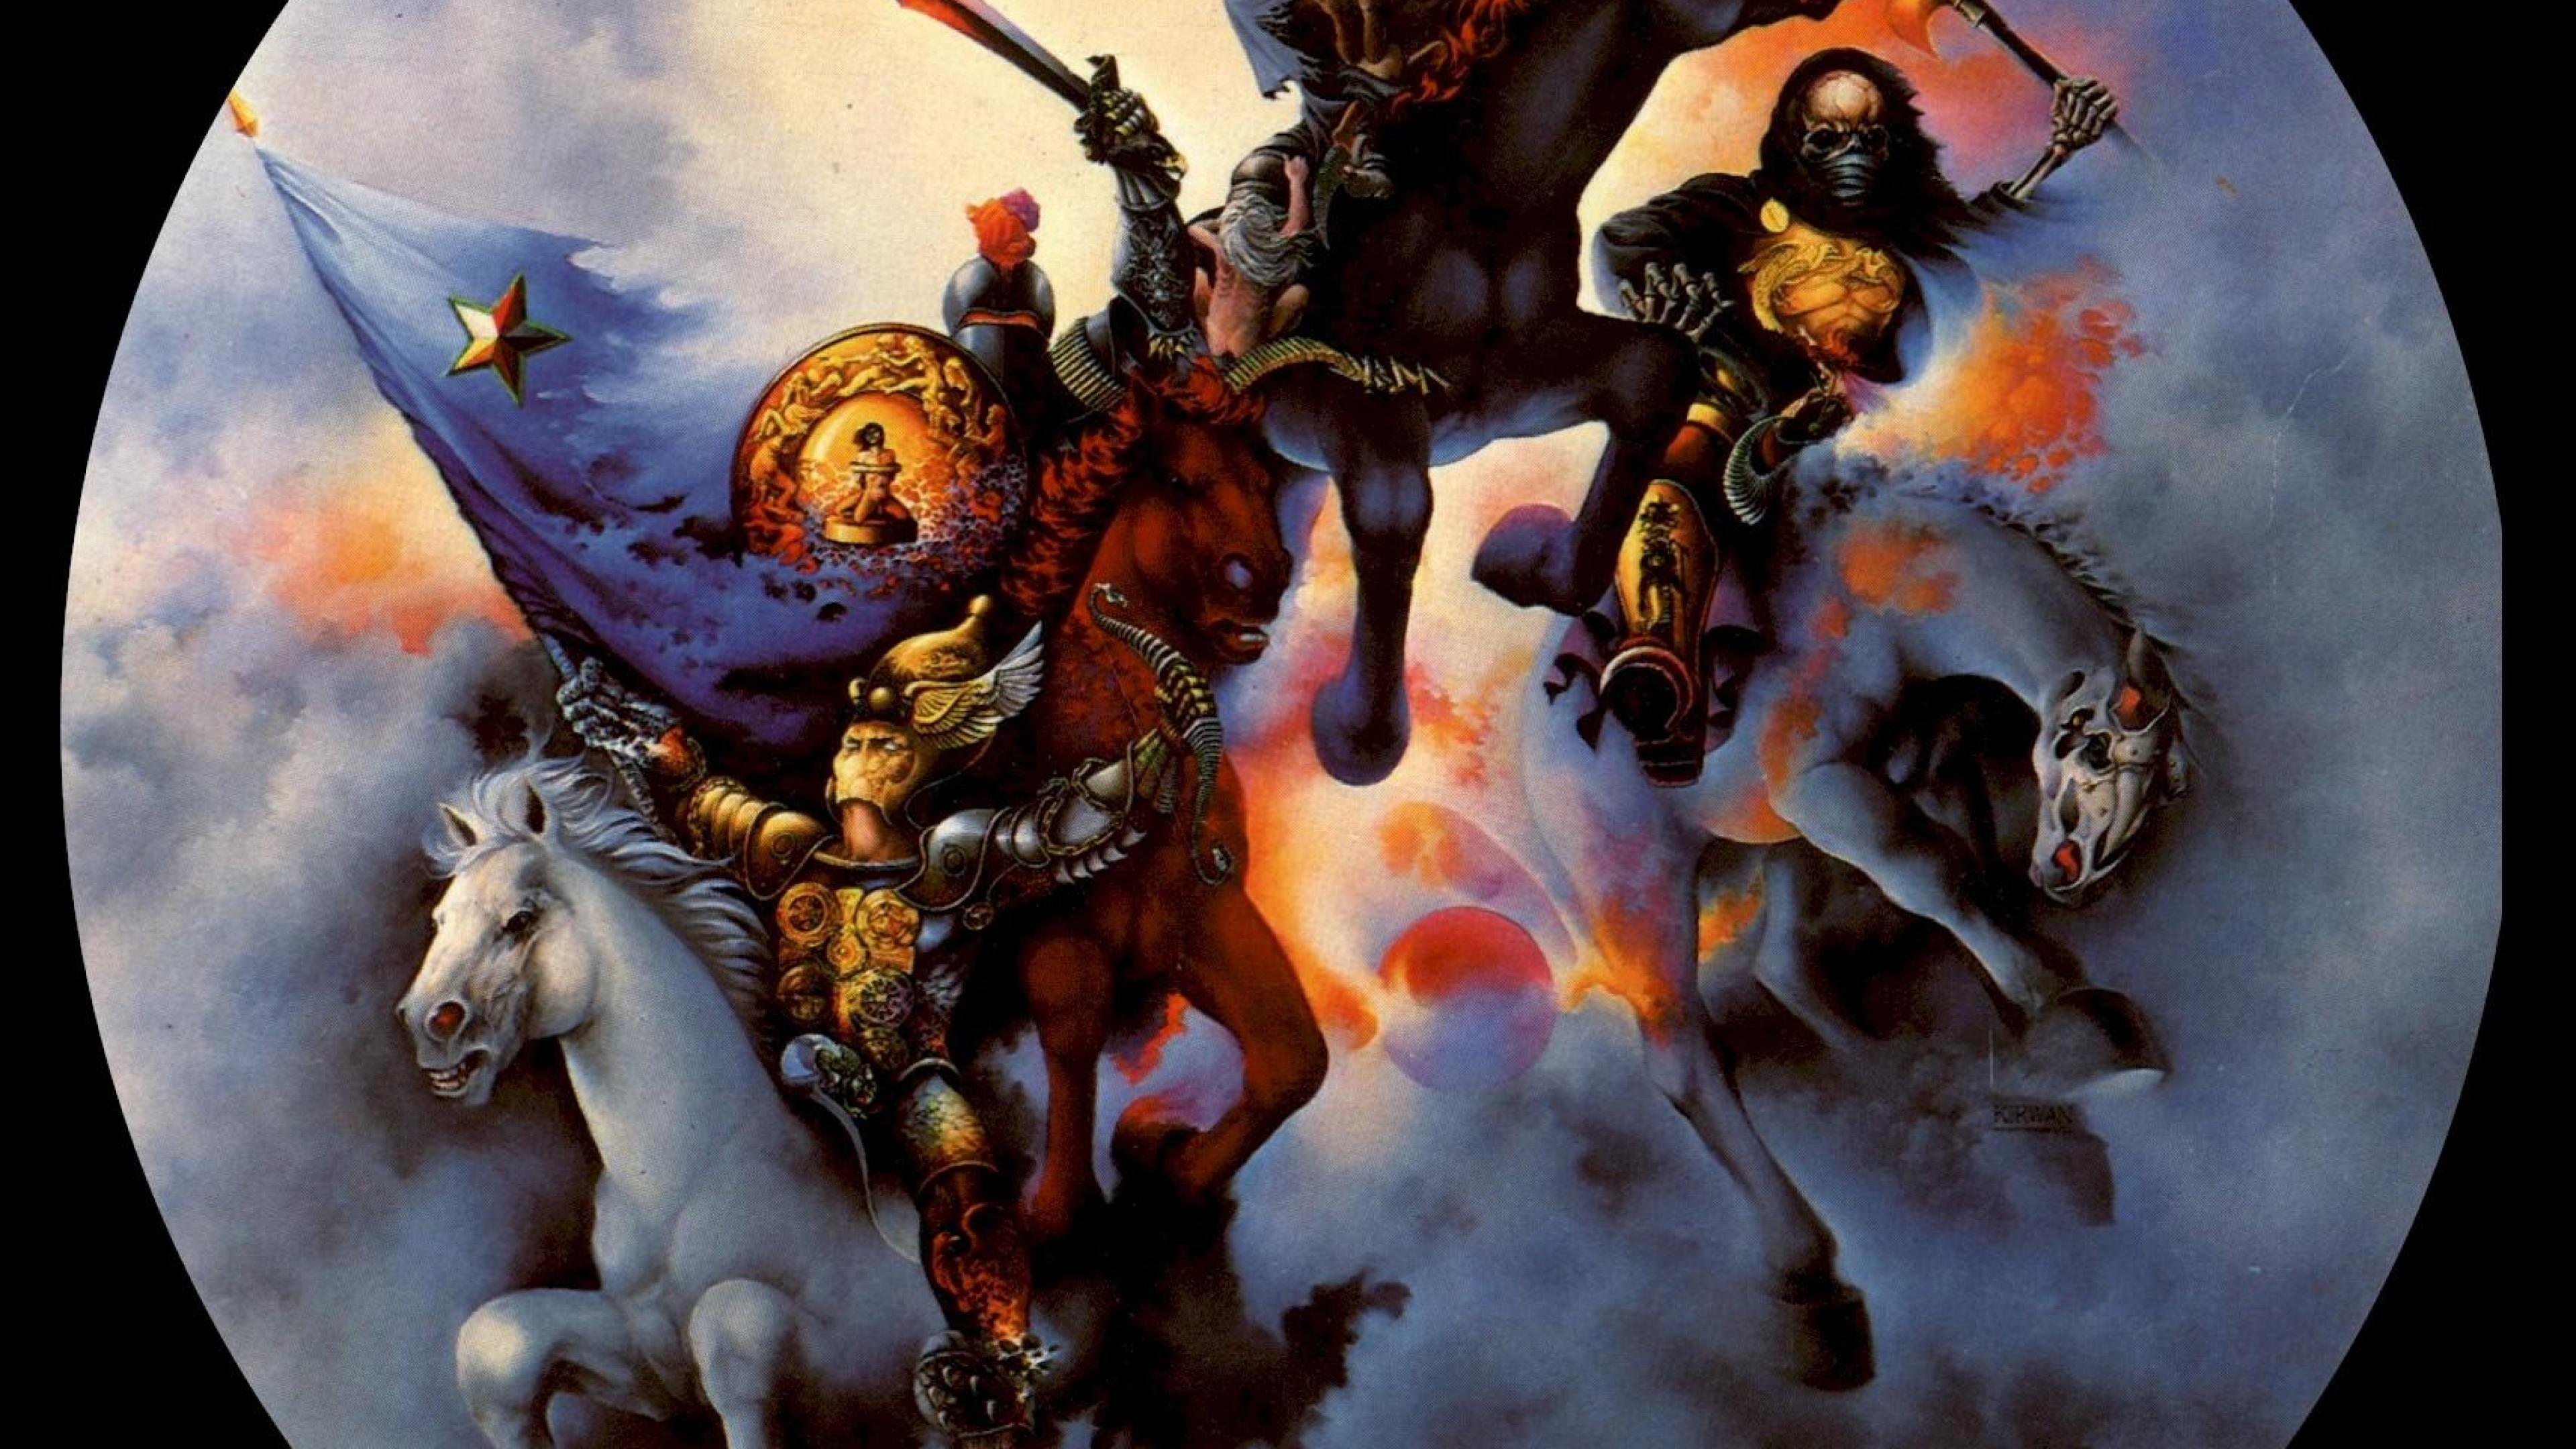 Christian Religious Horsemen of apocalypse HD Wallpapers 3840x2160